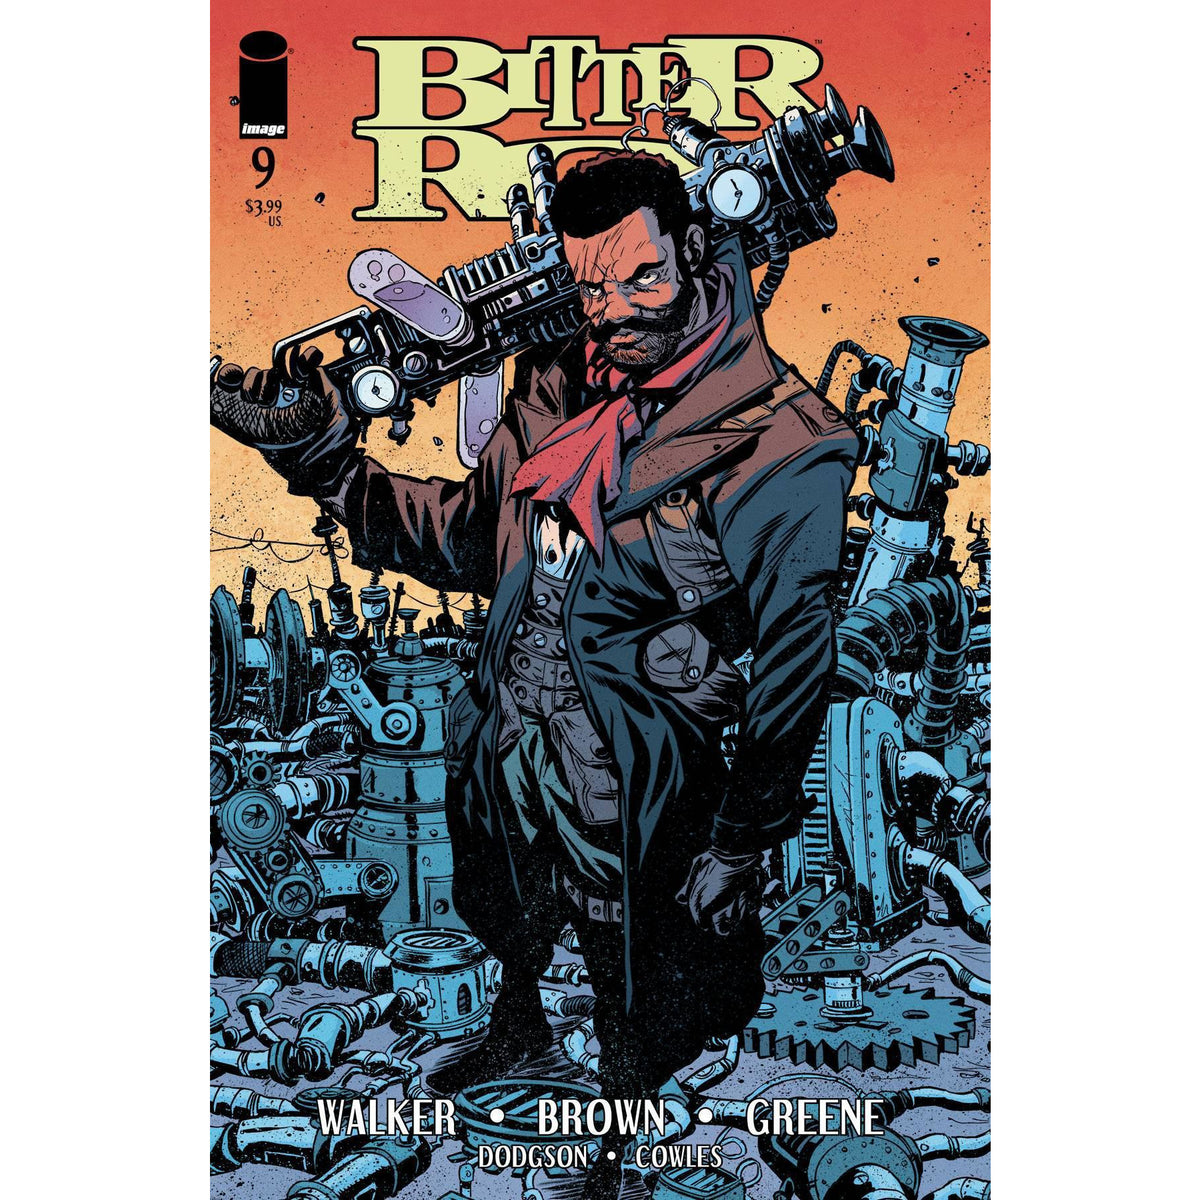 BITTER ROOT #9 - GREENE COVER A